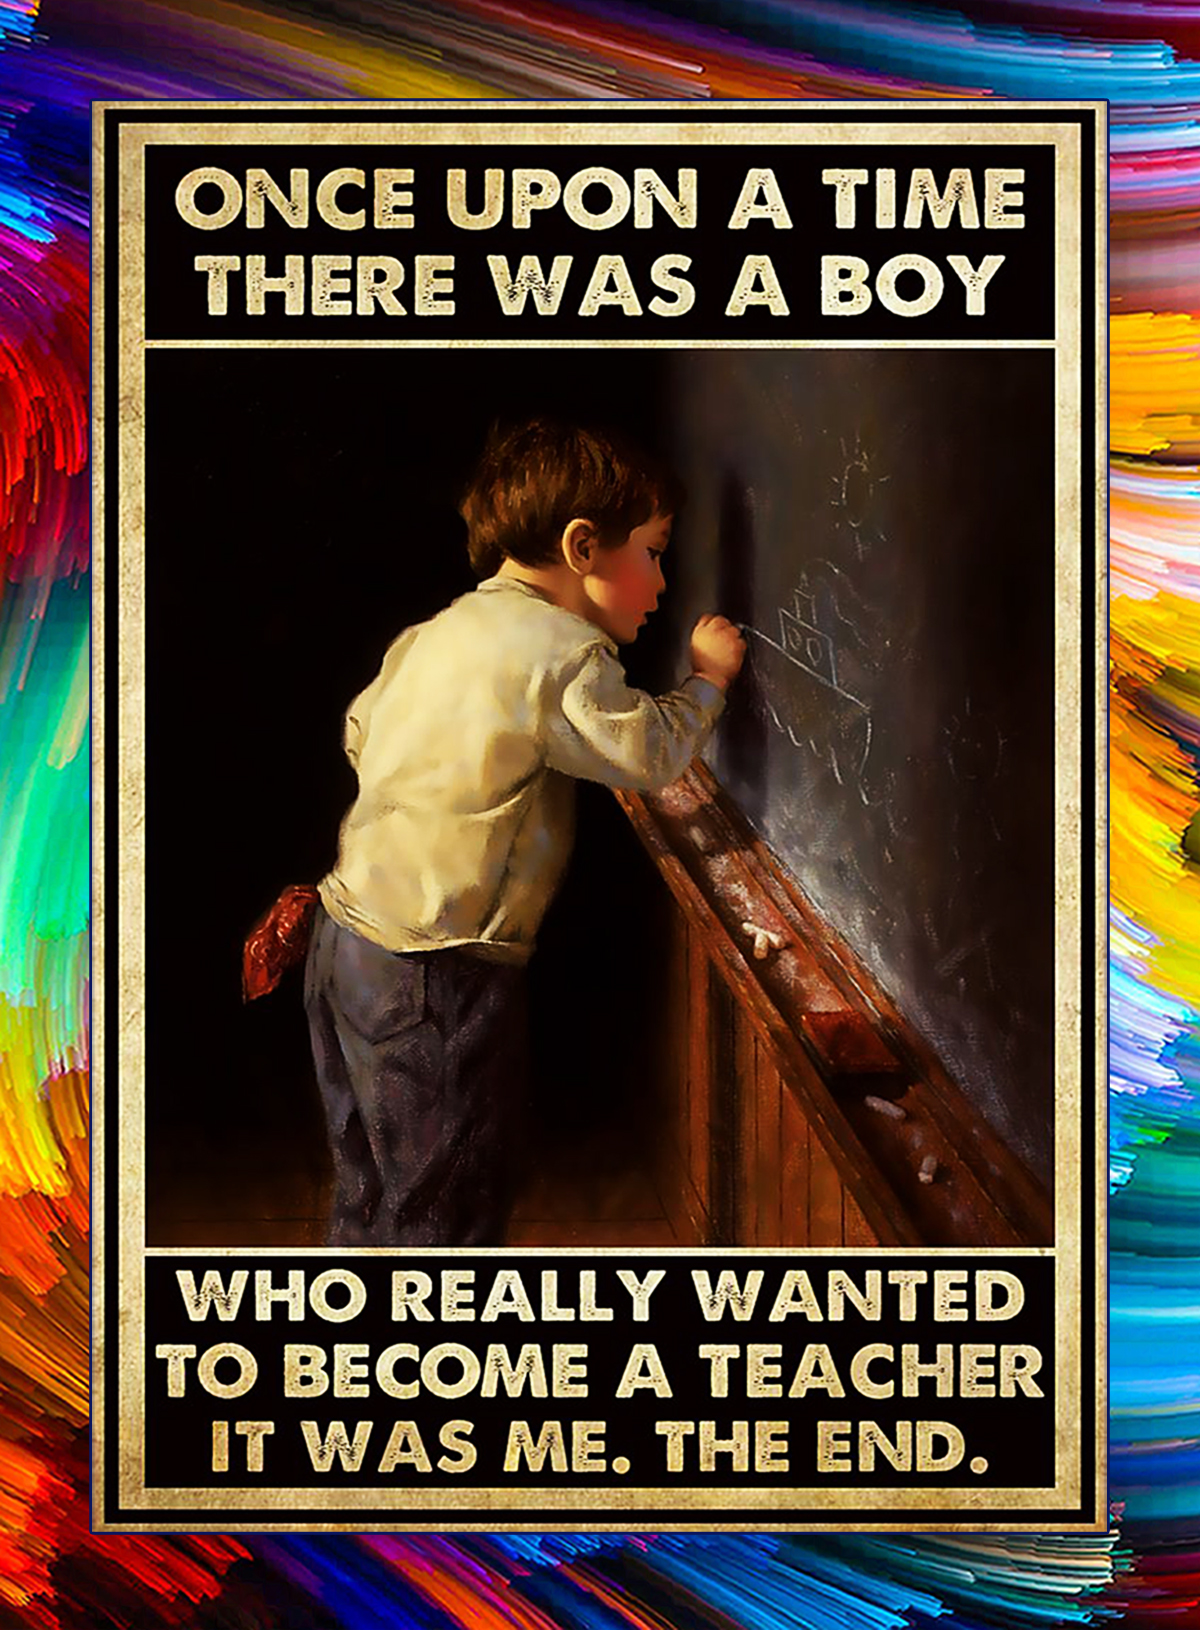 Once upon a time there was a boy who really wanted to become a teacher poster - A1